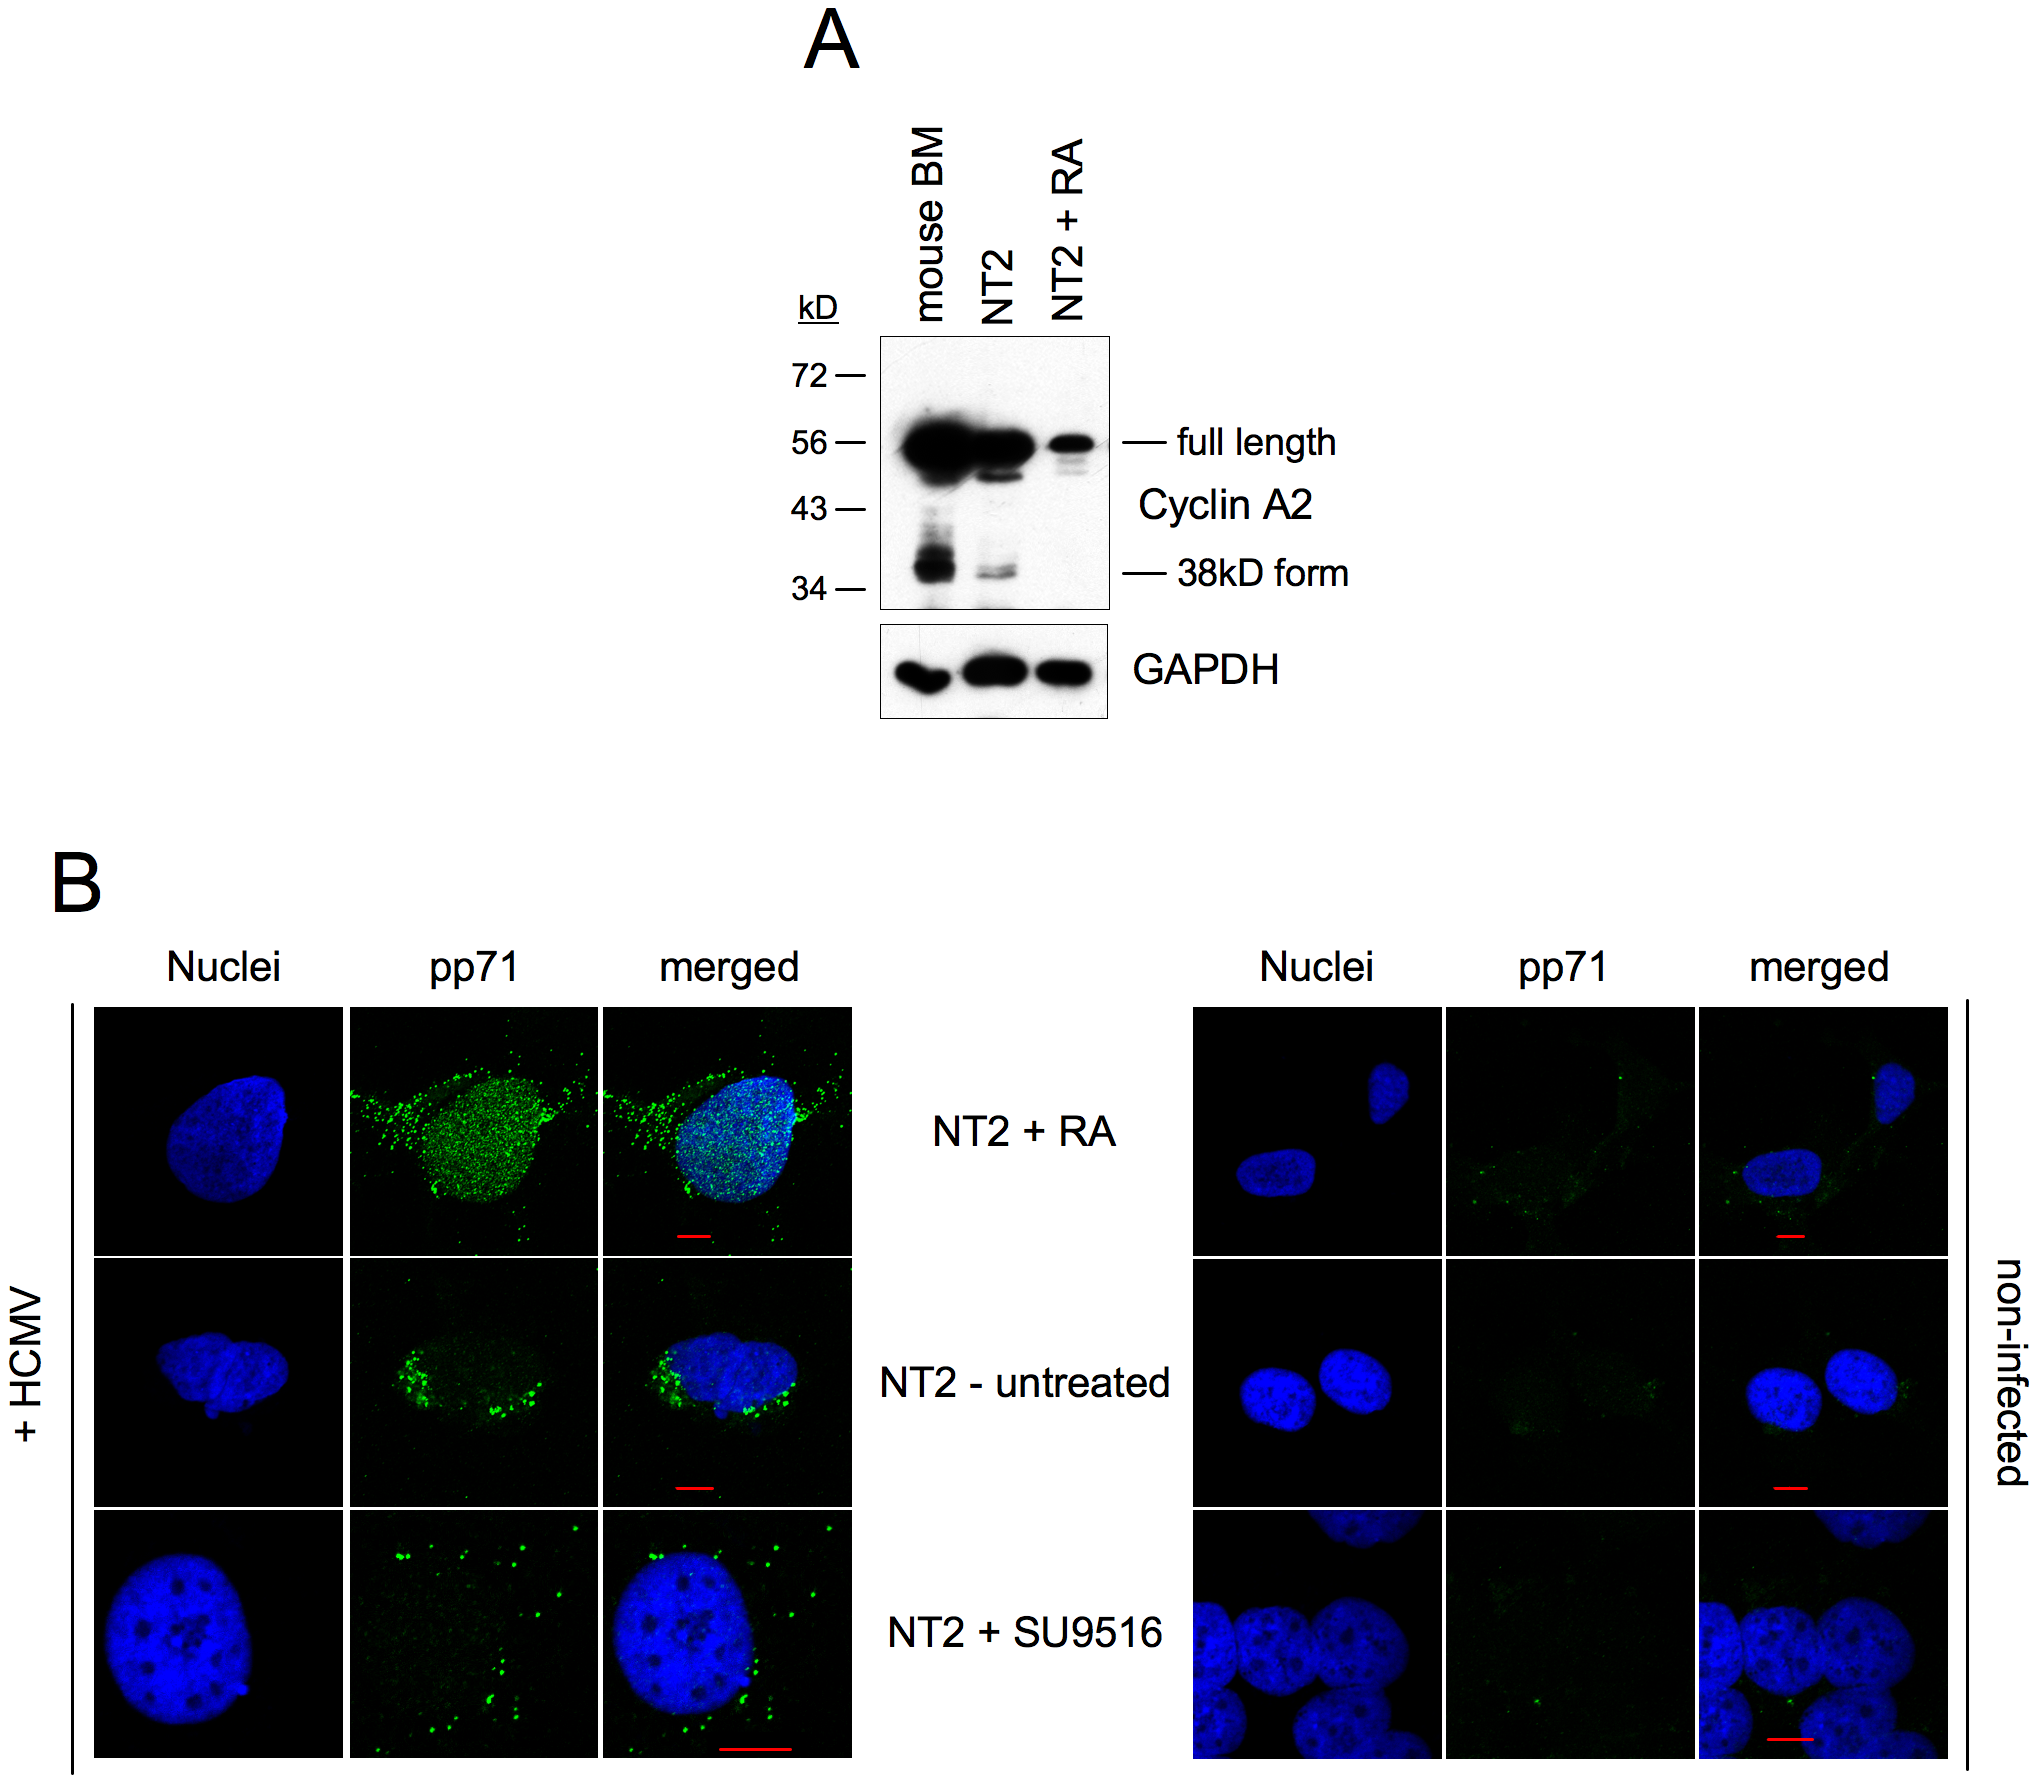 Induction of MIE gene expression by CDK inhibition does not require nuclear localization of pp71.